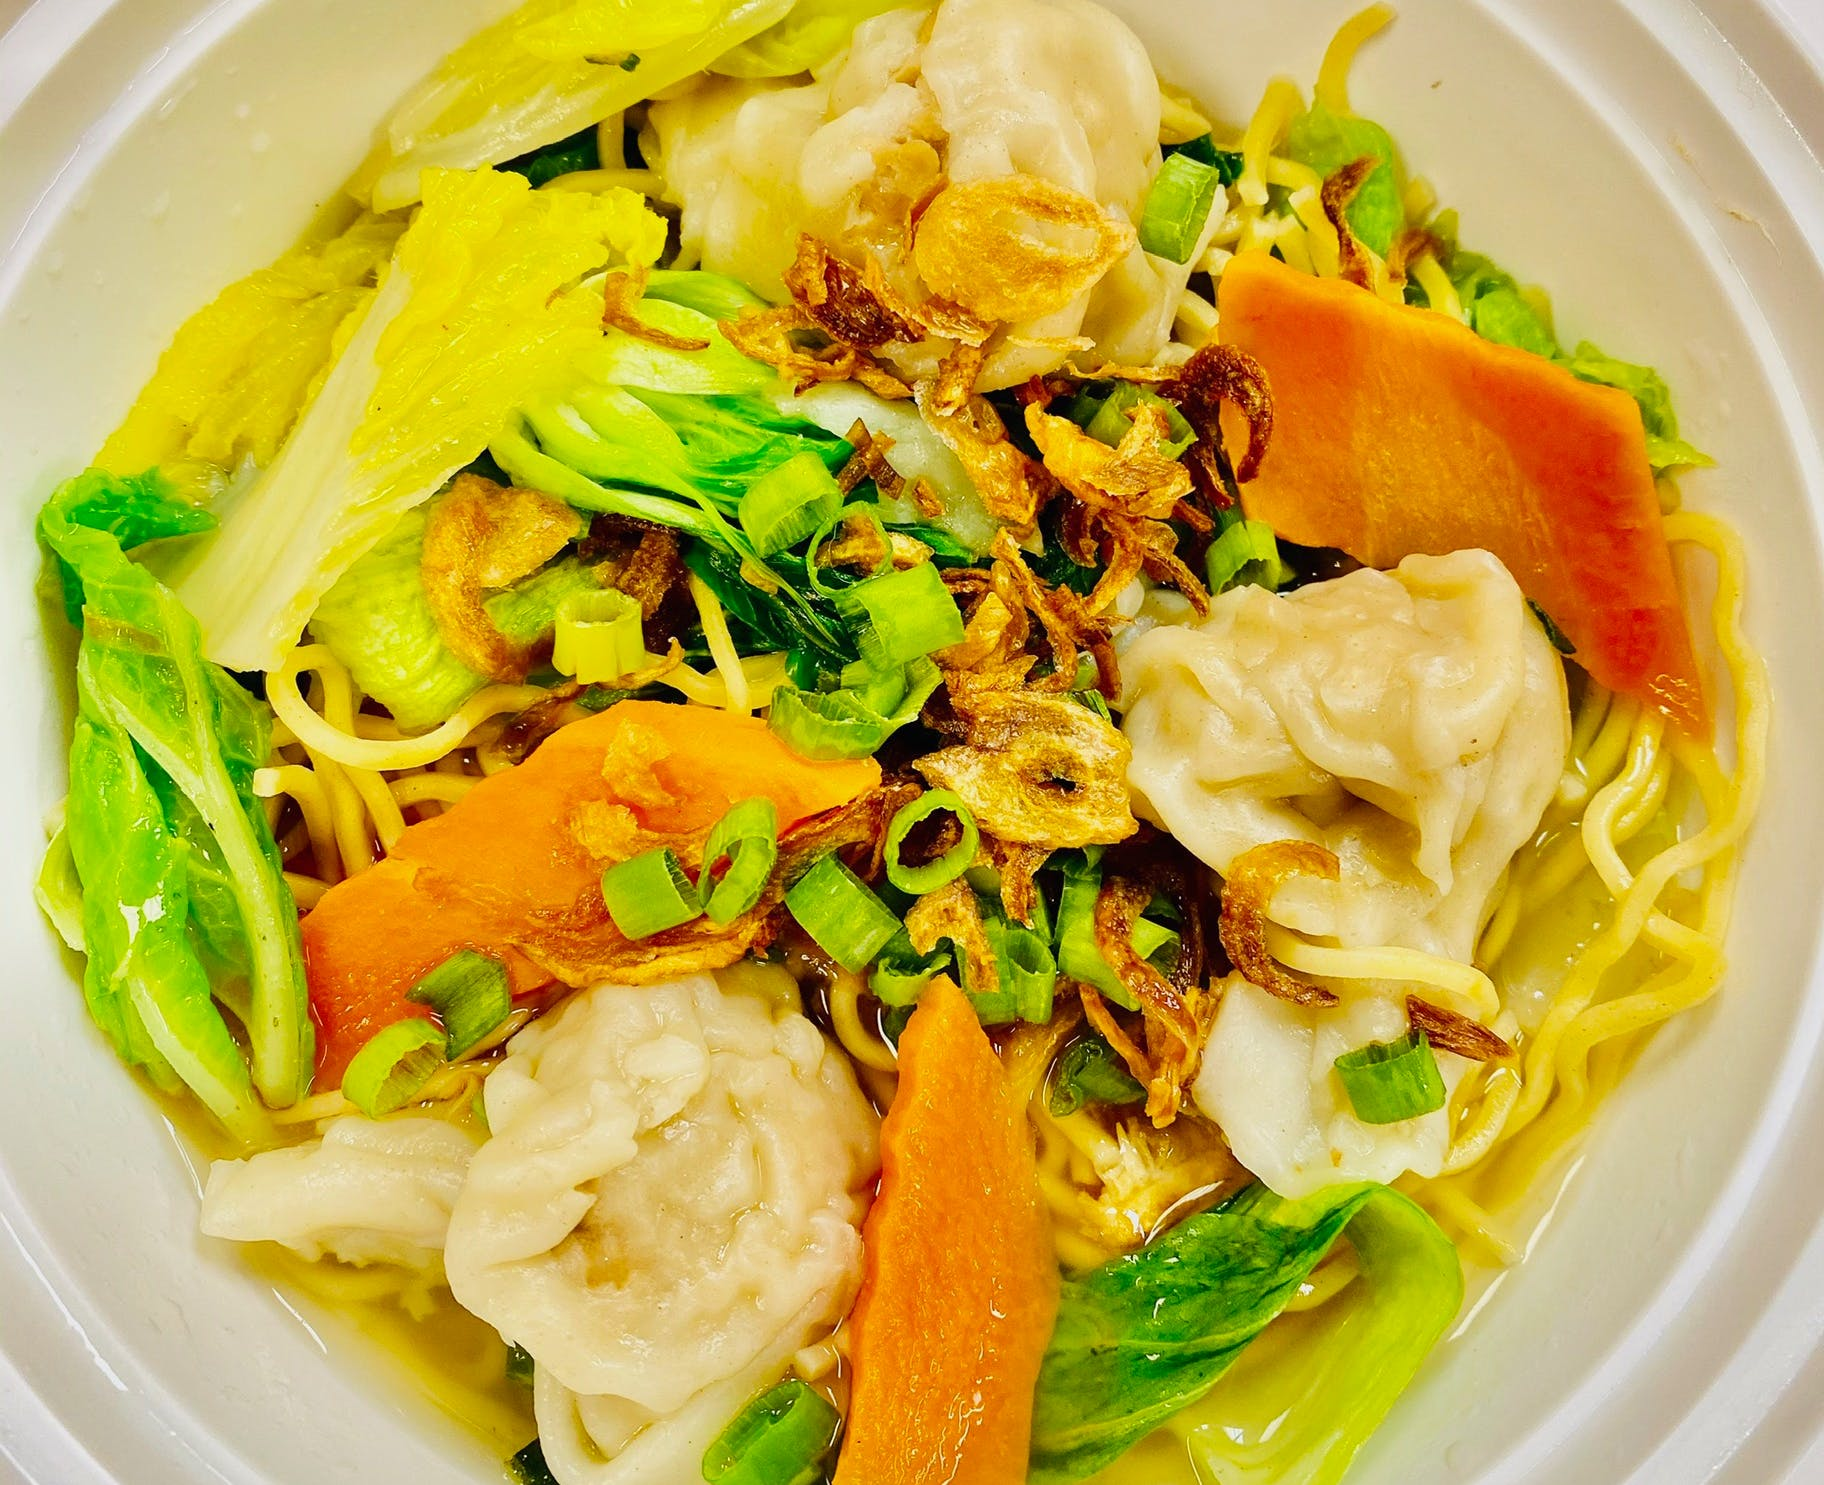 Wonton Noodle Soup from Stir Fry 88 in Green Bay, WI